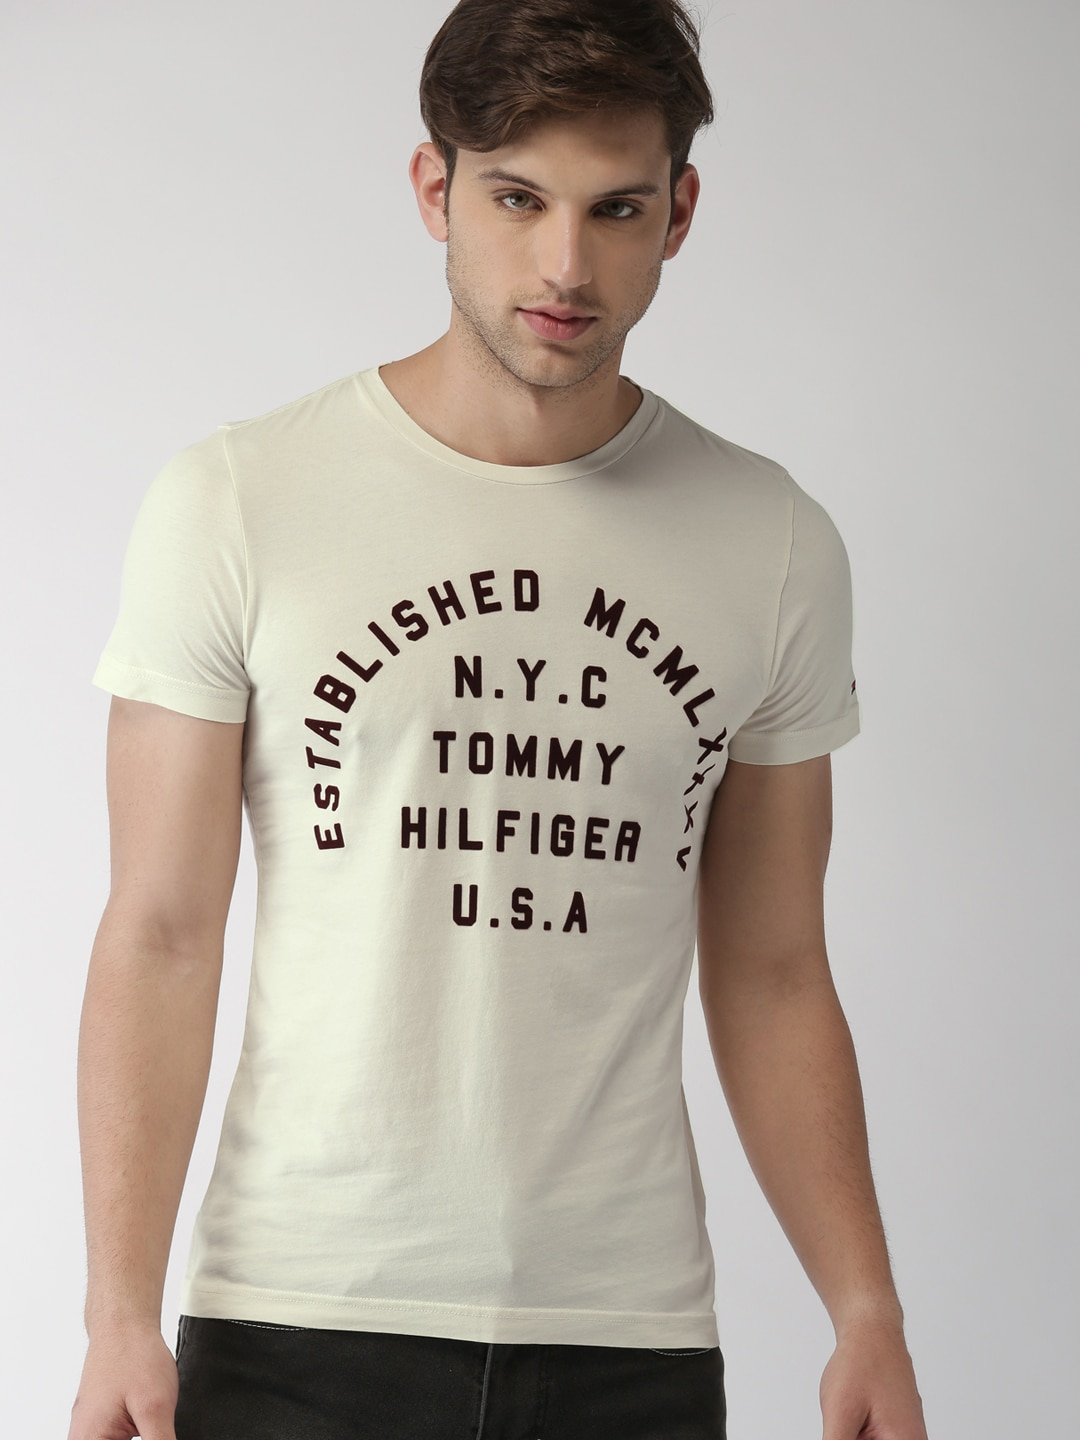 853d9ed63 Tommy Hilfiger Men White Printed Round Neck Tshirt - Buy Tommy Hilfiger Men White  Printed Round Neck Tshirt online in India